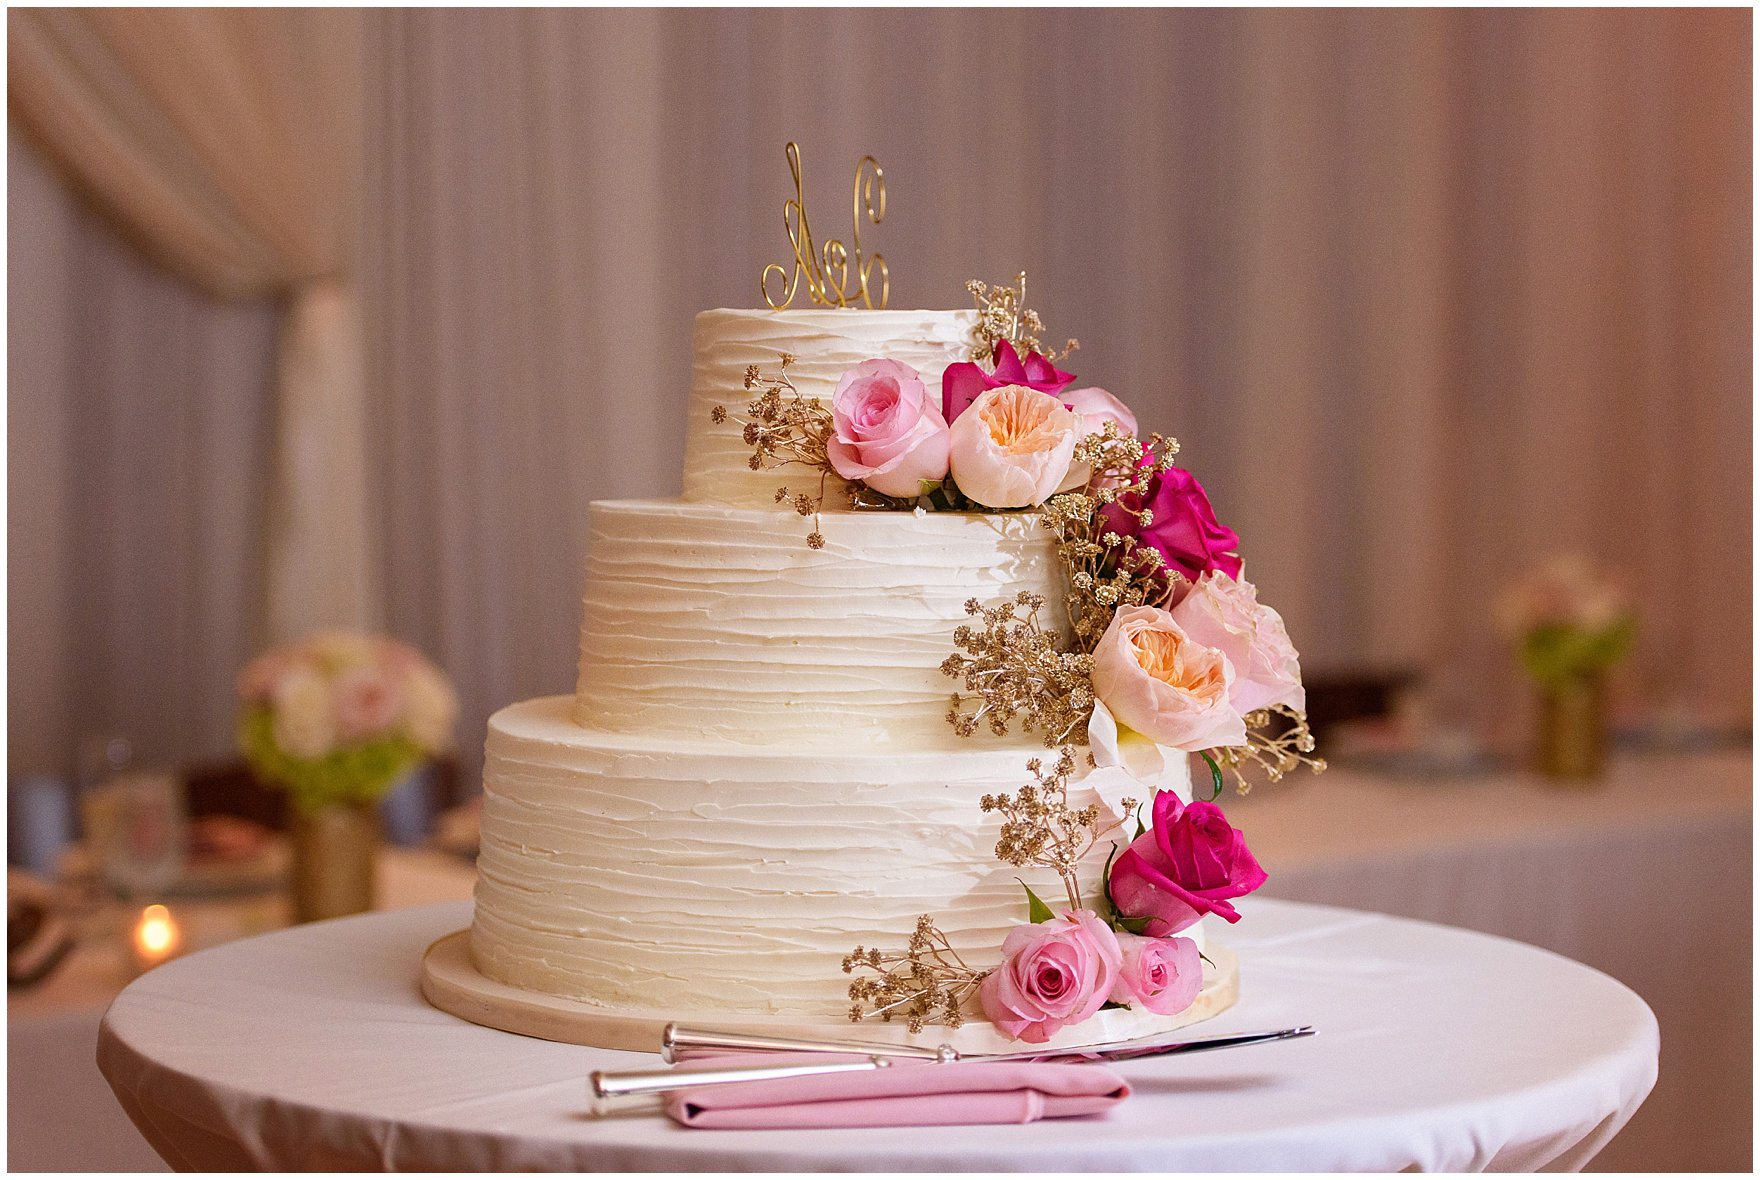 Reception decor including a wedding cake with pink roses for a St. Josephs Downers Grove Pinstripes Oak Brook, Illinois wedding.